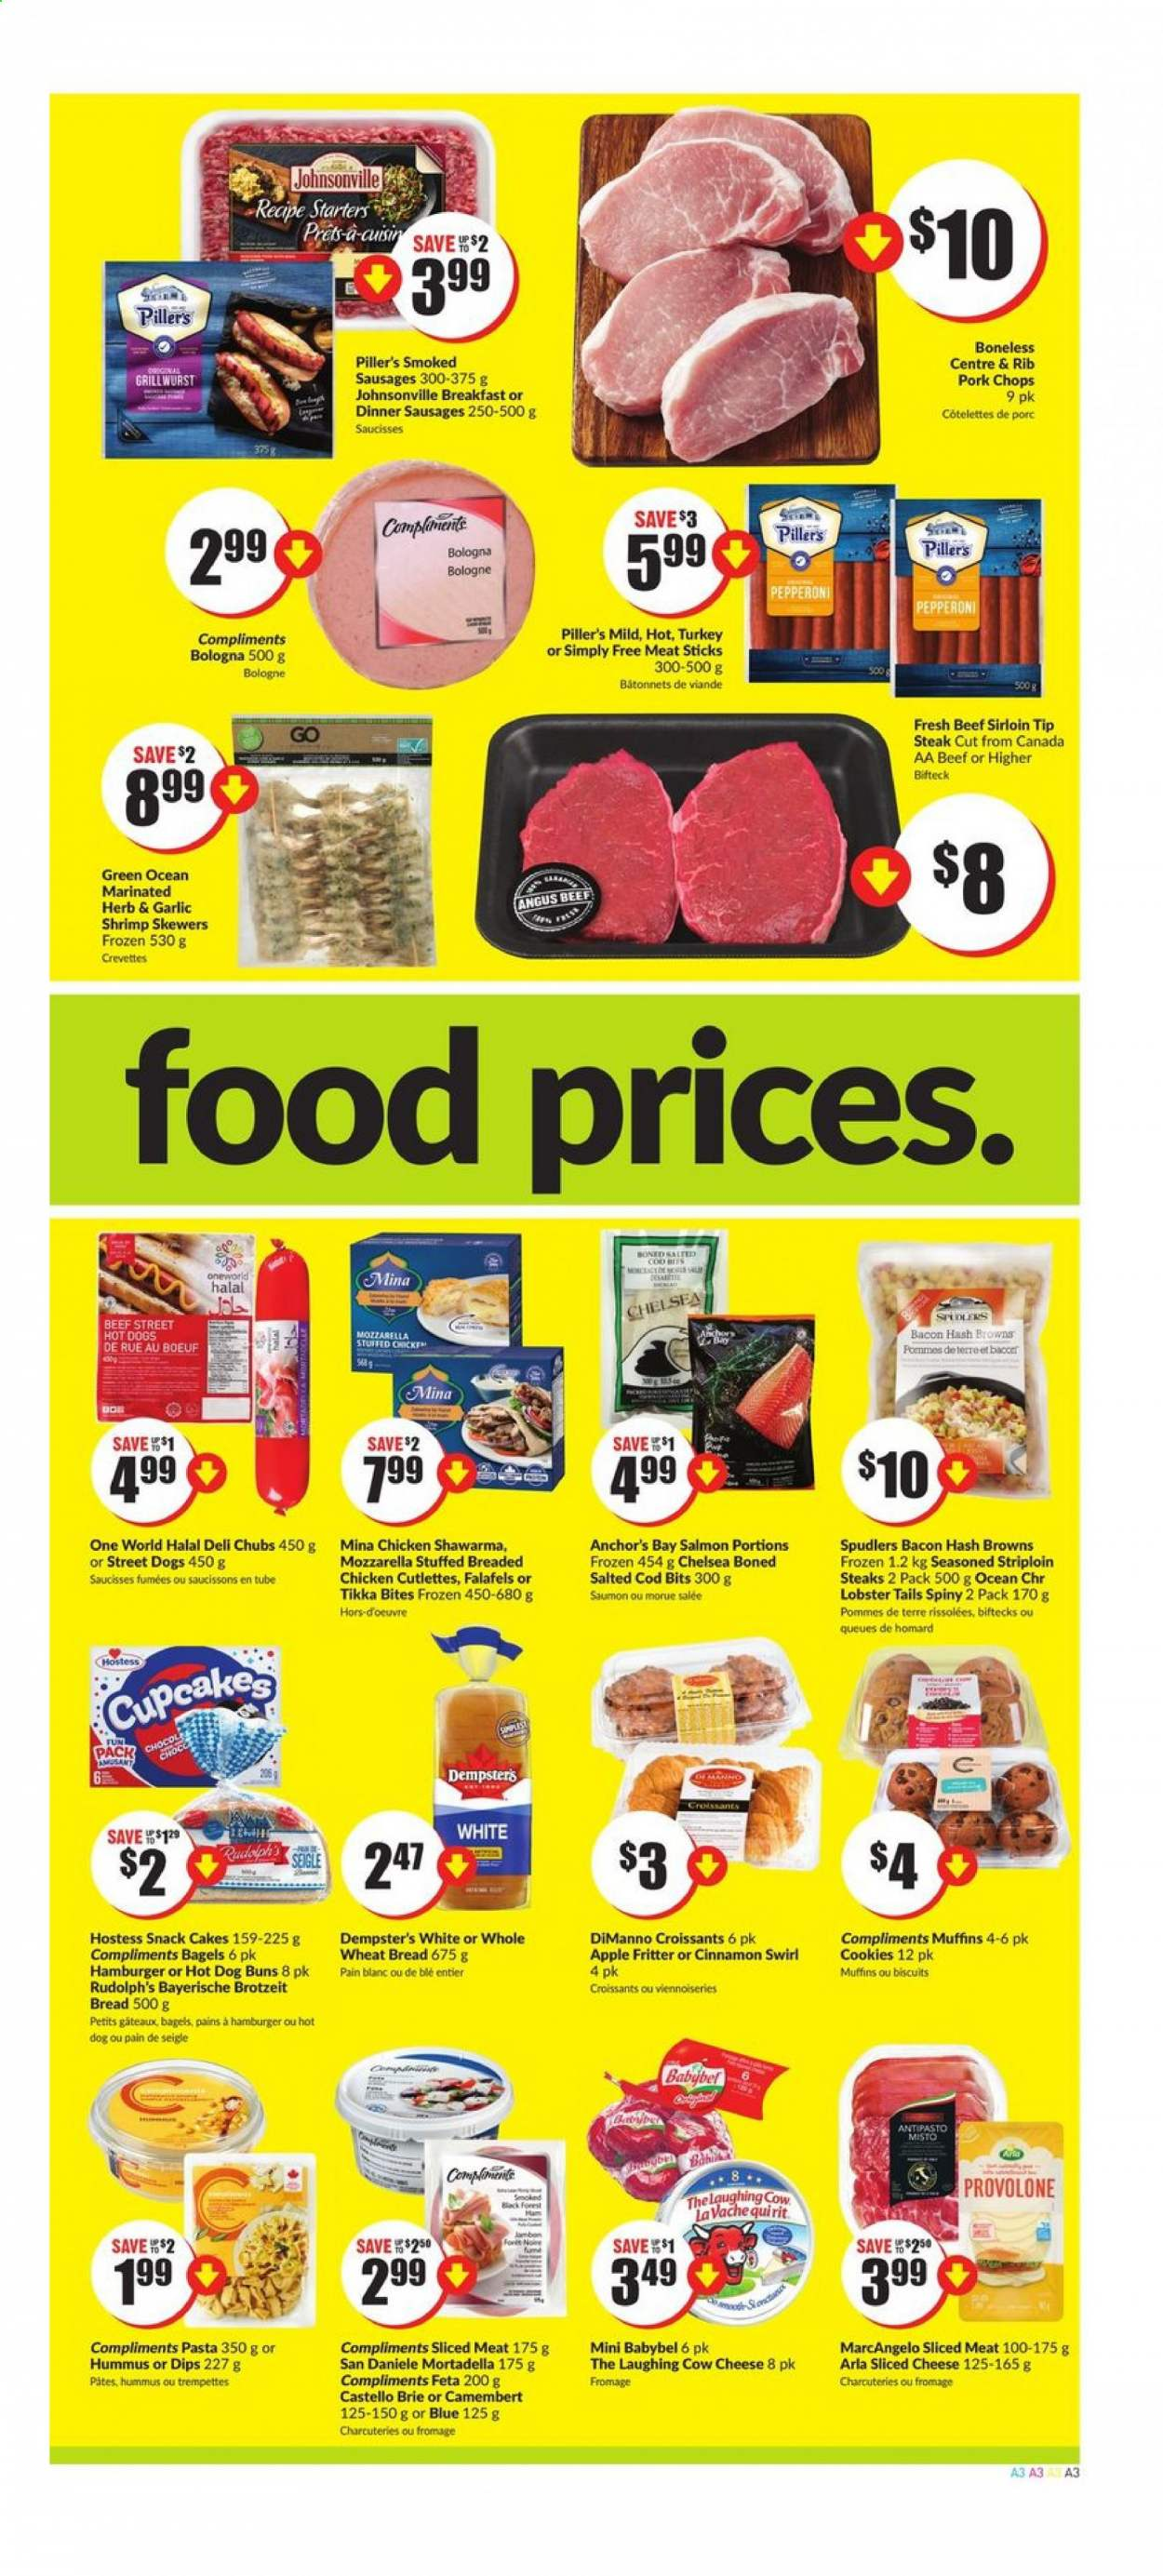 FreshCo. Flyer - July 23, 2020 - July 29, 2020 - Sales products - apples, bacon, bagels, beef meat, beef sirloin, biscuits, bread, brie, camembert, cod, cookies, croissants, cupcake, cupcakes, fêta, garlic, lobster, lobster tails, mortadella, mozzarella, muffins, salmon, sausages, shrimp, sliced cheese, tikka, turkey, viennoiseries, wheat bread, ham, hash browns, hot dog, hummus, pork chops, pork meat, provolone, chicken, pepperoni, steak, cheese, burgerON DUPLICATE KEY UPDATE `name` = VALUES(`name`); burgers, snack, hamburger, pasta, herb, saumon, viande, porc, jambon, babybel, biscuit, blé, bœuf, crevette, fromage, homard, swirl, morue, saucisse, pommes de terre, pâtes. Page 3.